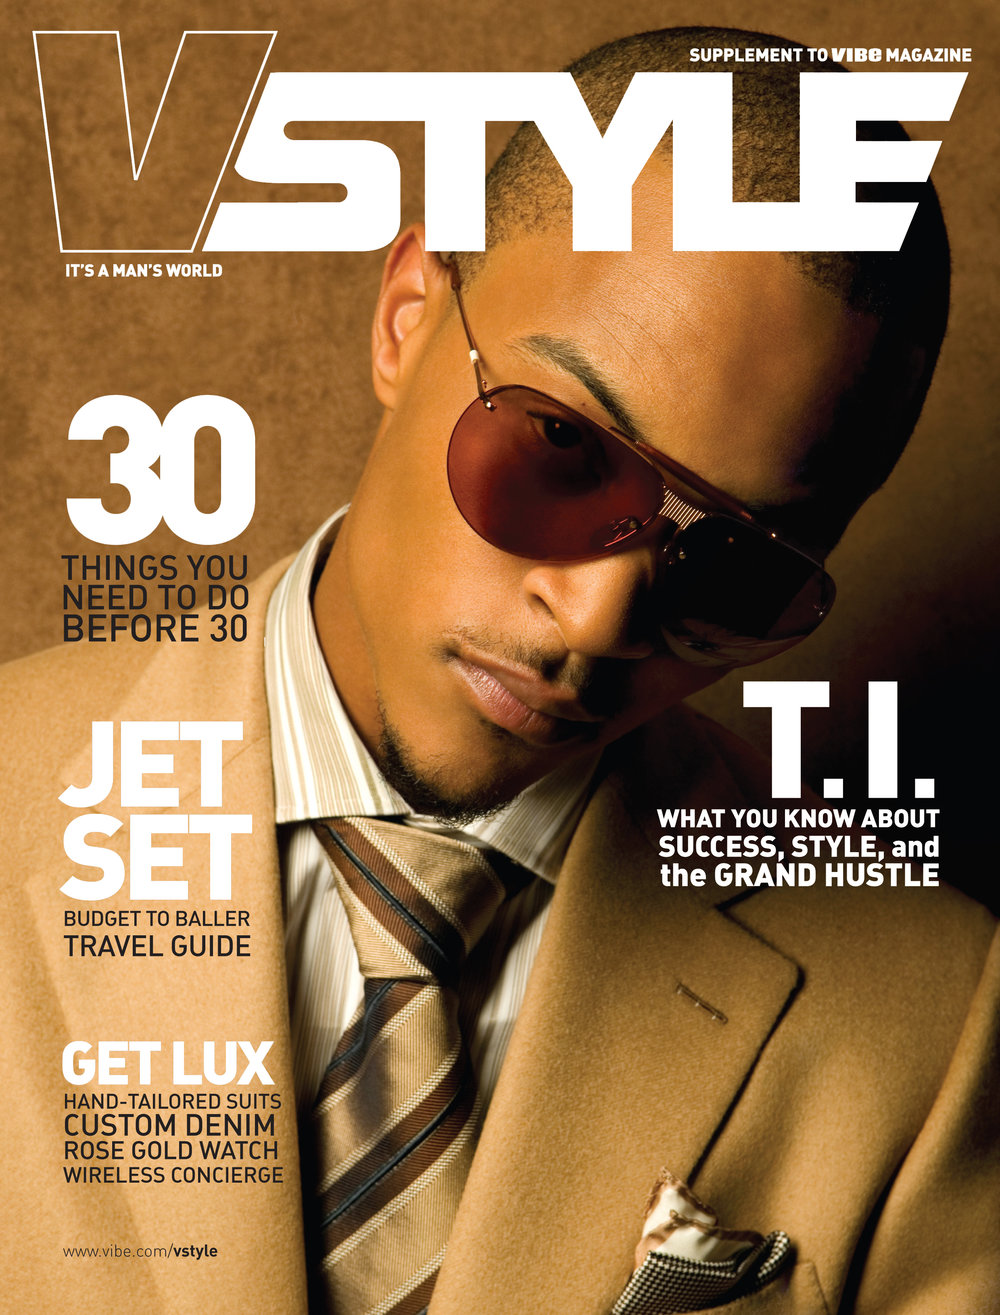 vstyle_cover.jpg